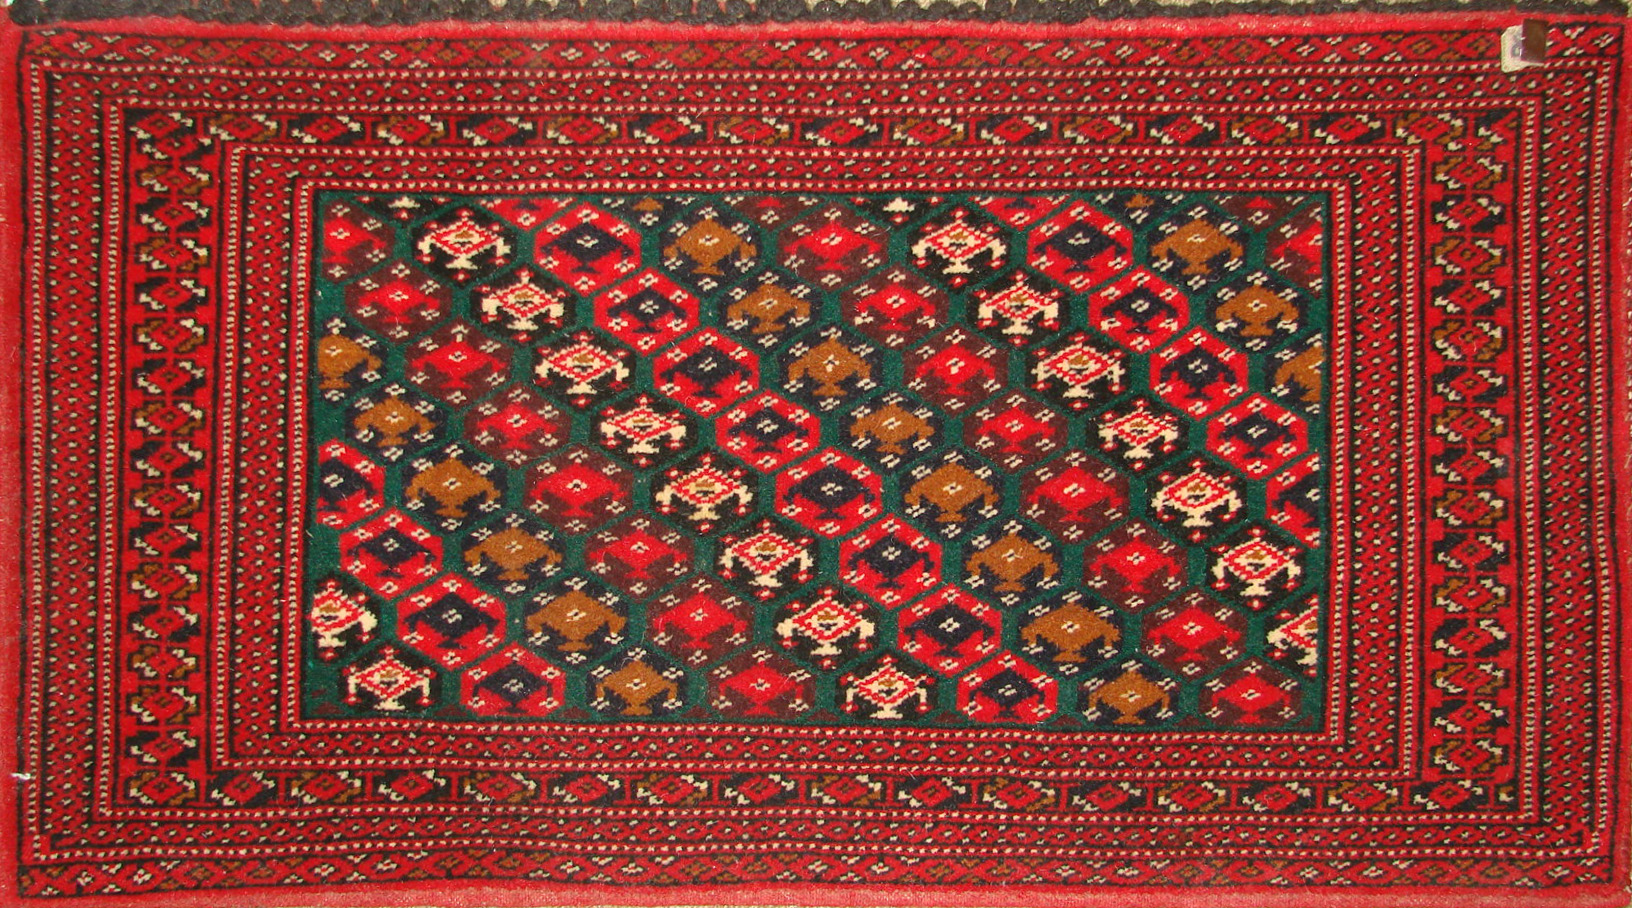 1.6X2 & SMALLER Bokhara Hand Knotted Wool Area Rug - MR19480